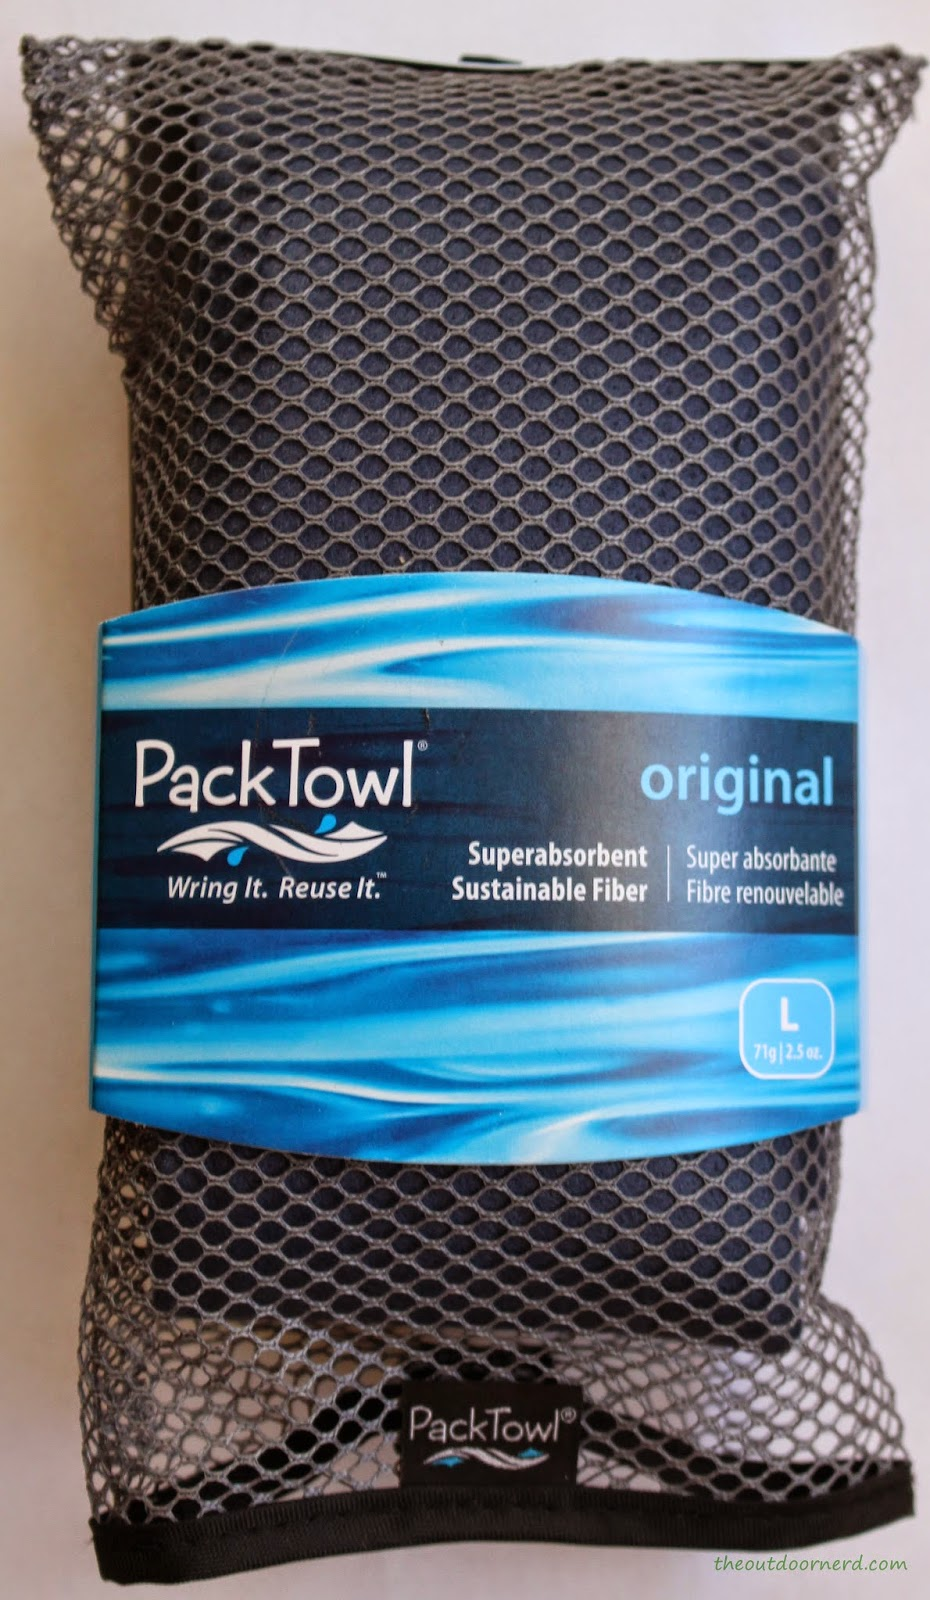 PackTowl Camp Towel